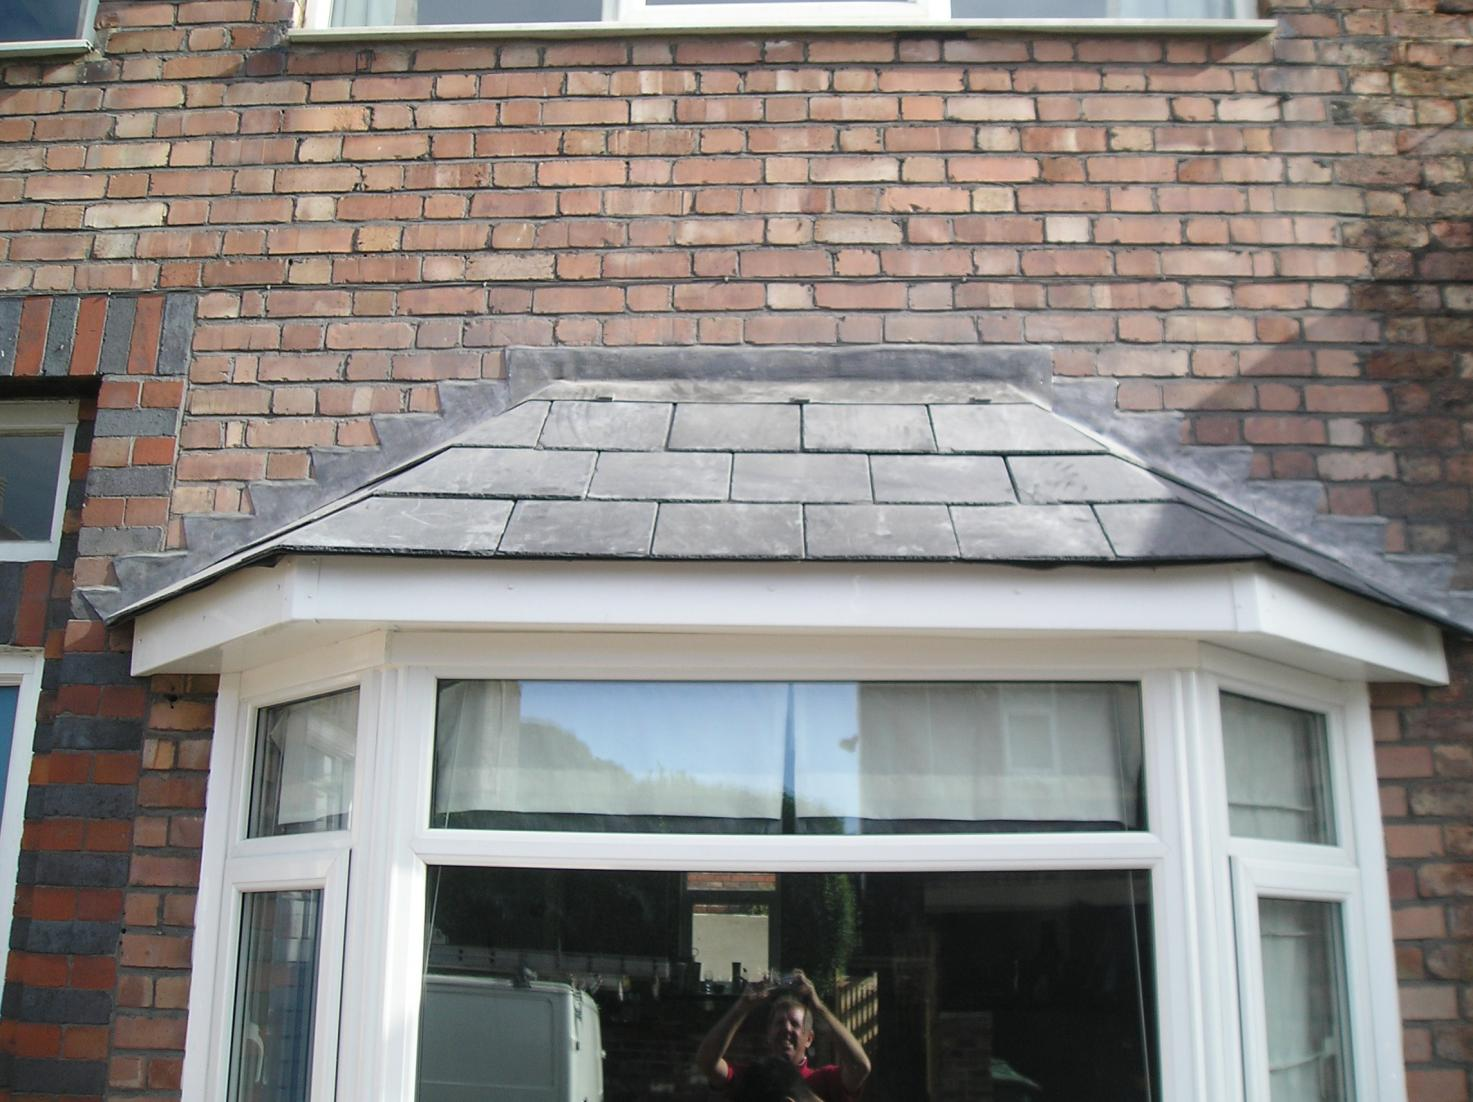 Step Flashing Vs L Shaped Flashing Contractor Talk Professional Construction And Remodeling Forum